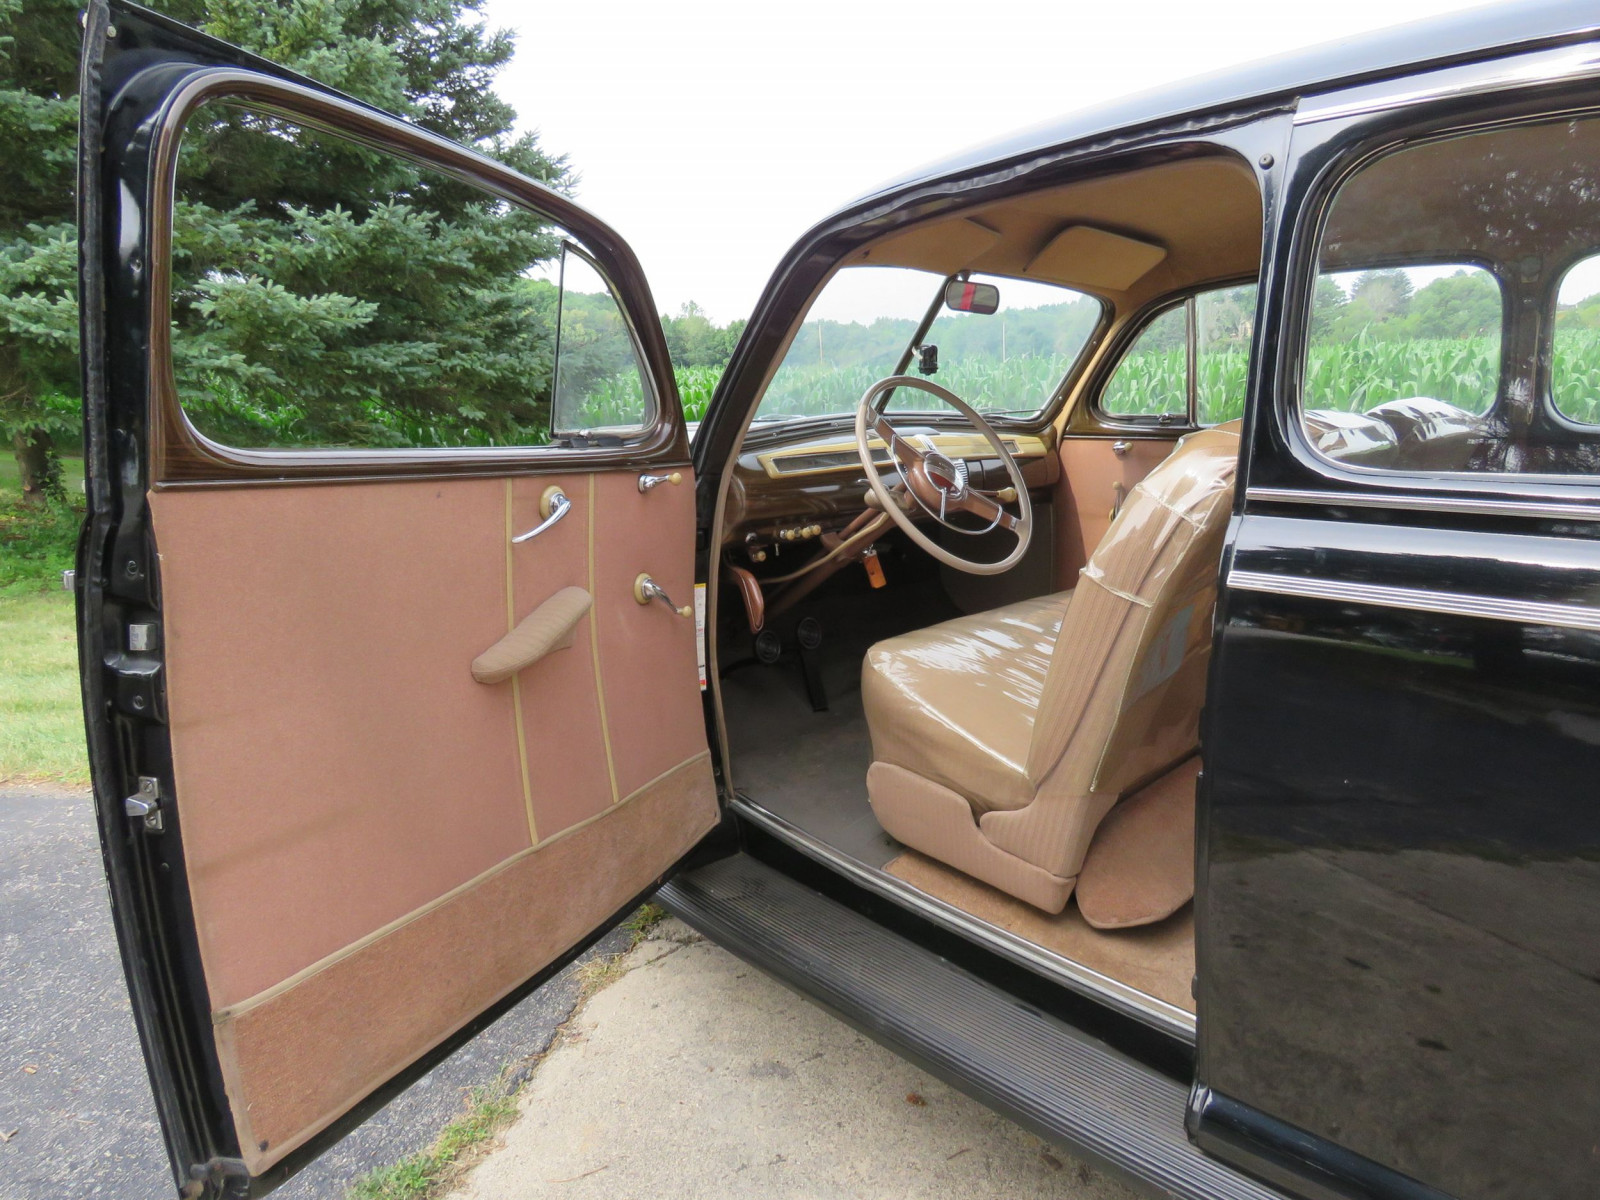 1941 Ford Super Deluxe Tudor Sedan - Image 7